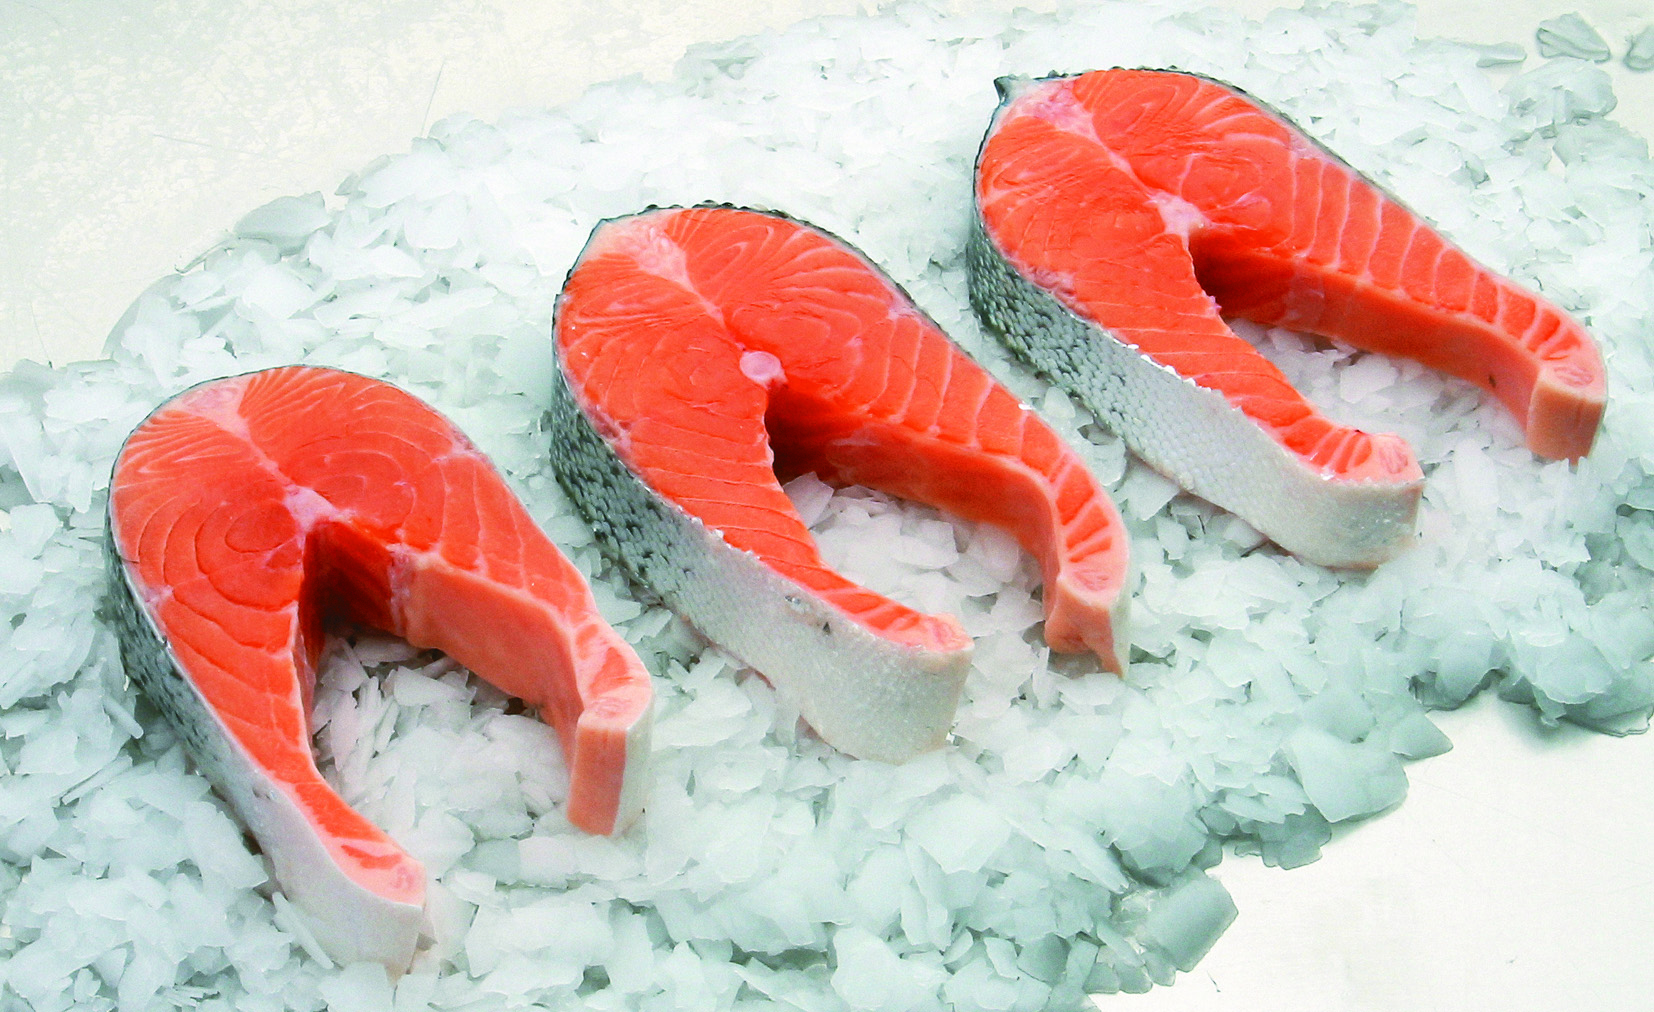 Salmon Fillets - Photo Courtesy of Petuna